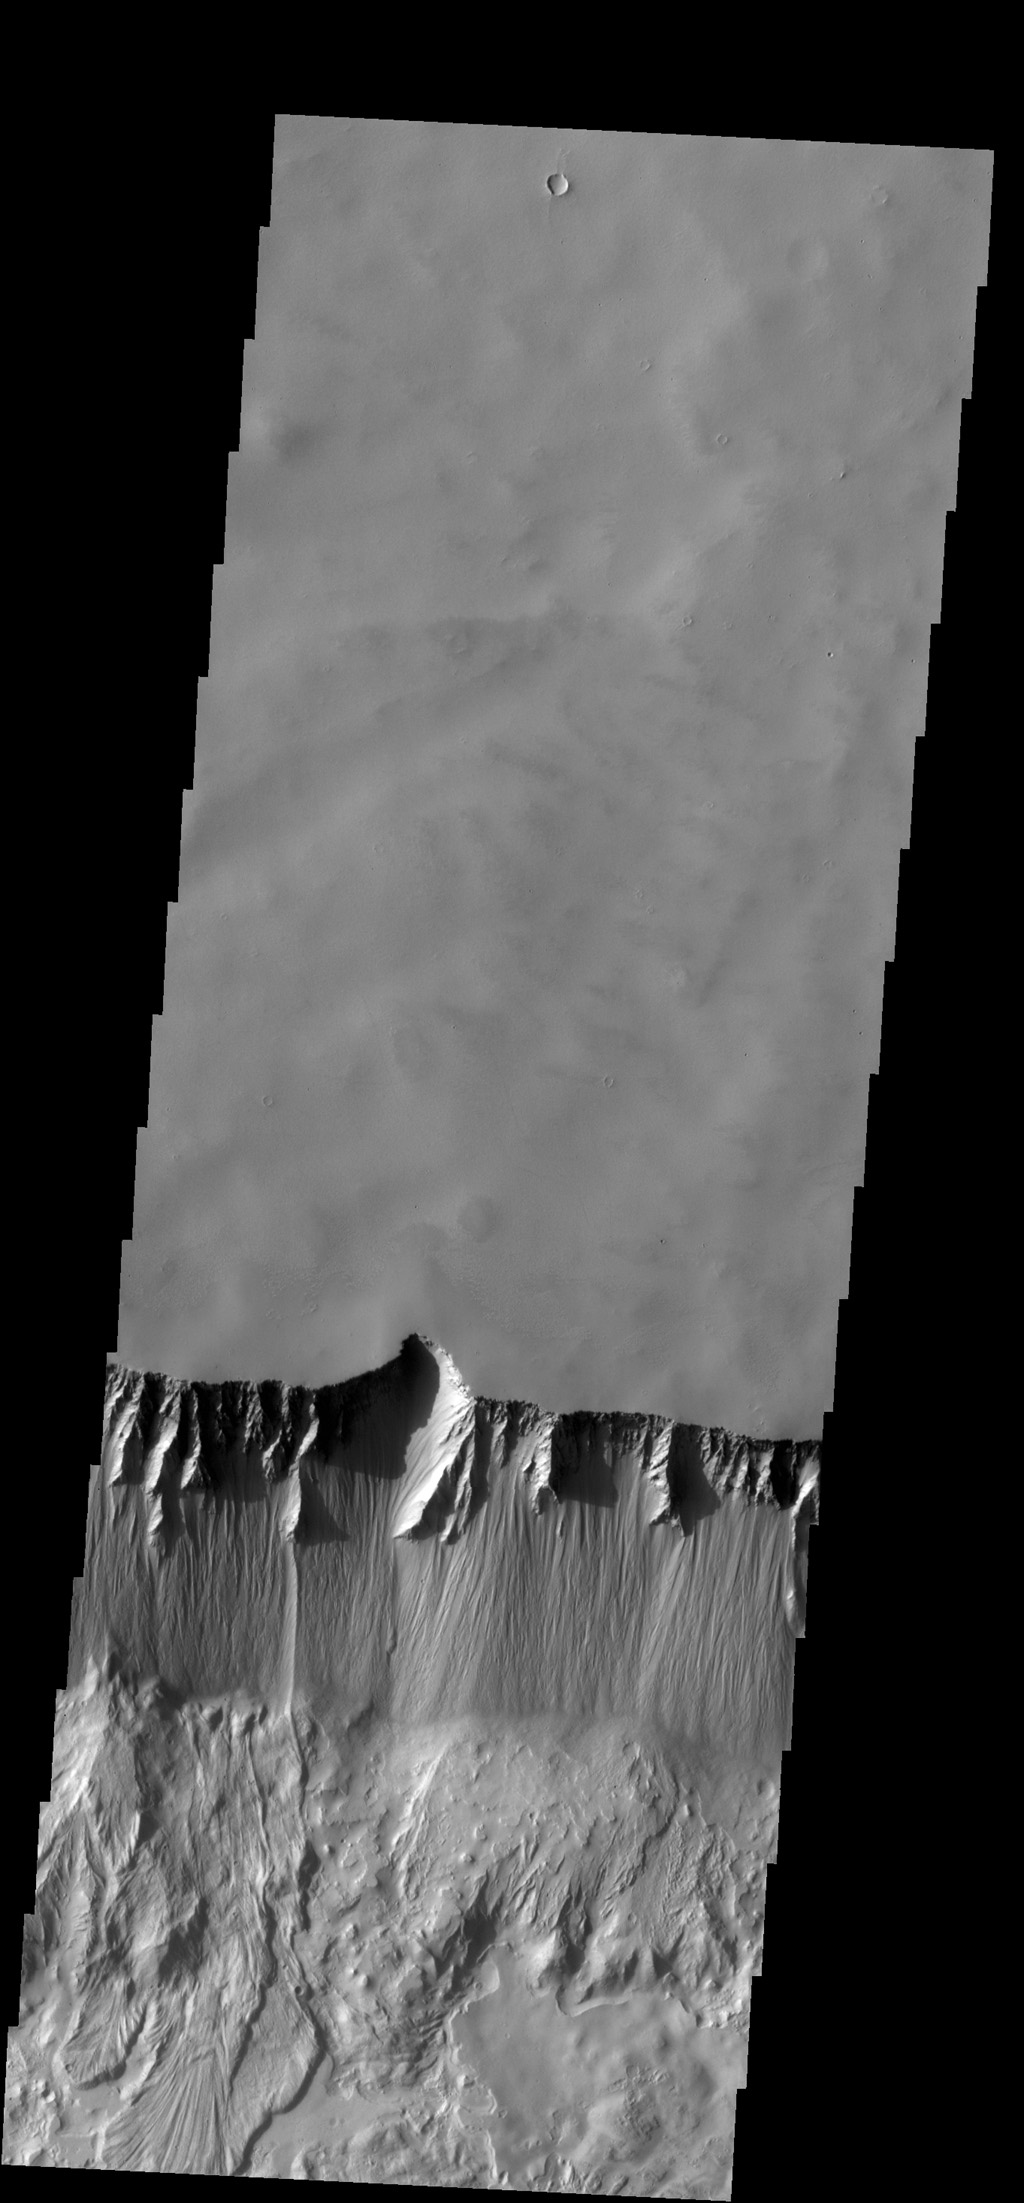 The steep northern wall of Tithonium Chasma crosses this image from NASA's 2001 Mars Odyssey spacecraft. Landslide deposits from slope failure can be seen at the lower left corner of the image.